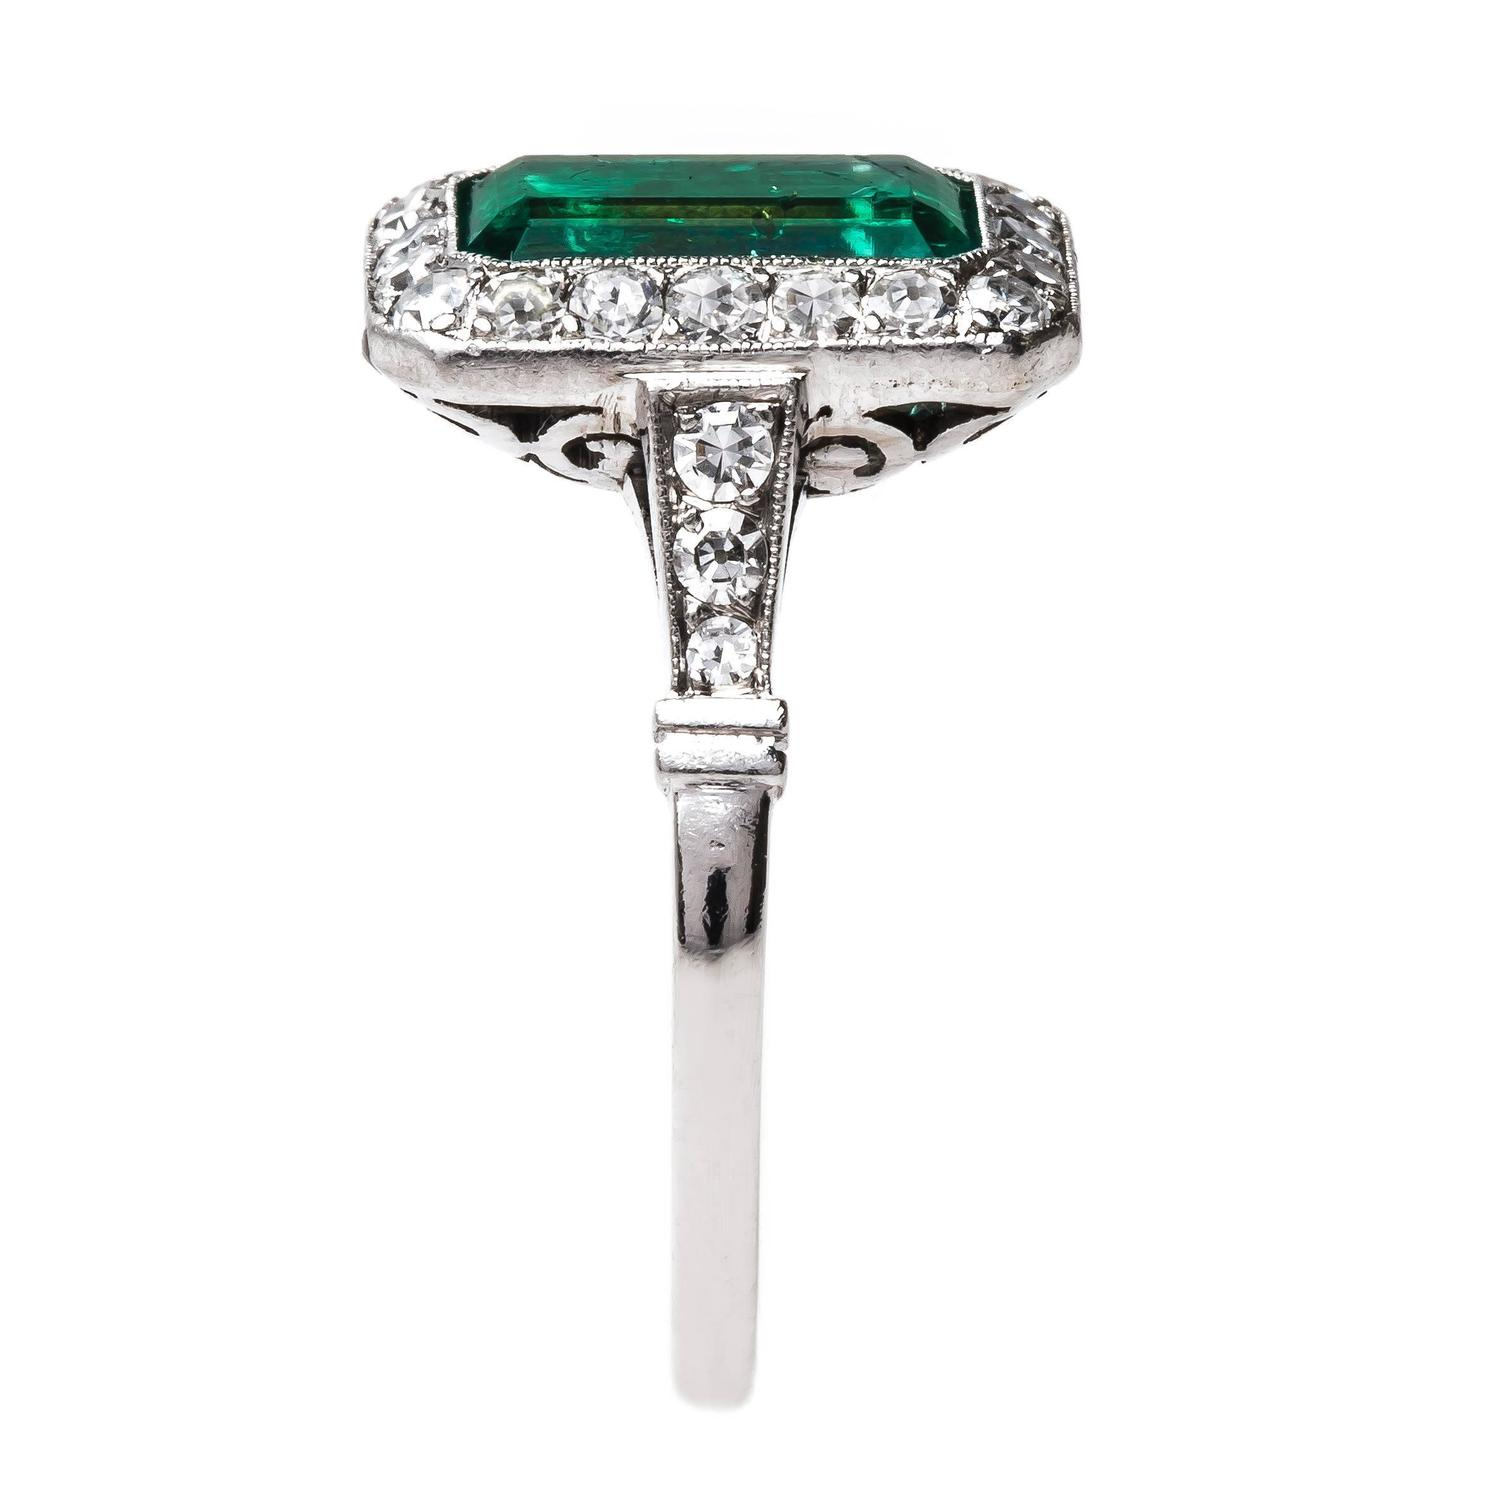 Quintessential Art Deco Colombian Emerald Diamond platinum Engagement Ring at